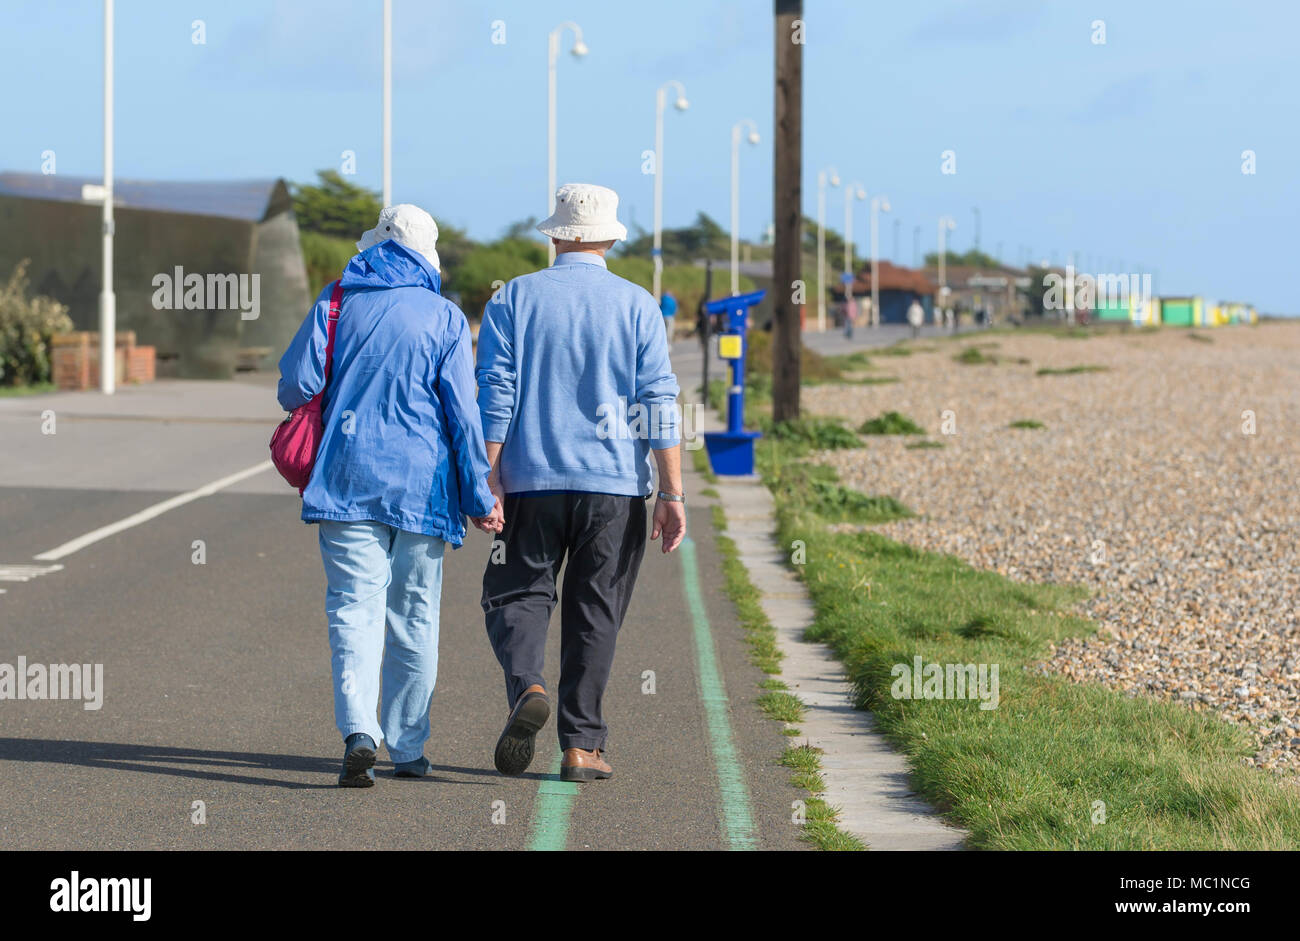 Senior couple walking away holding hands along the seafront promenade, on a sunny day in Littlehampton, West Sussex, England, UK. seafront stroll. Stock Photo